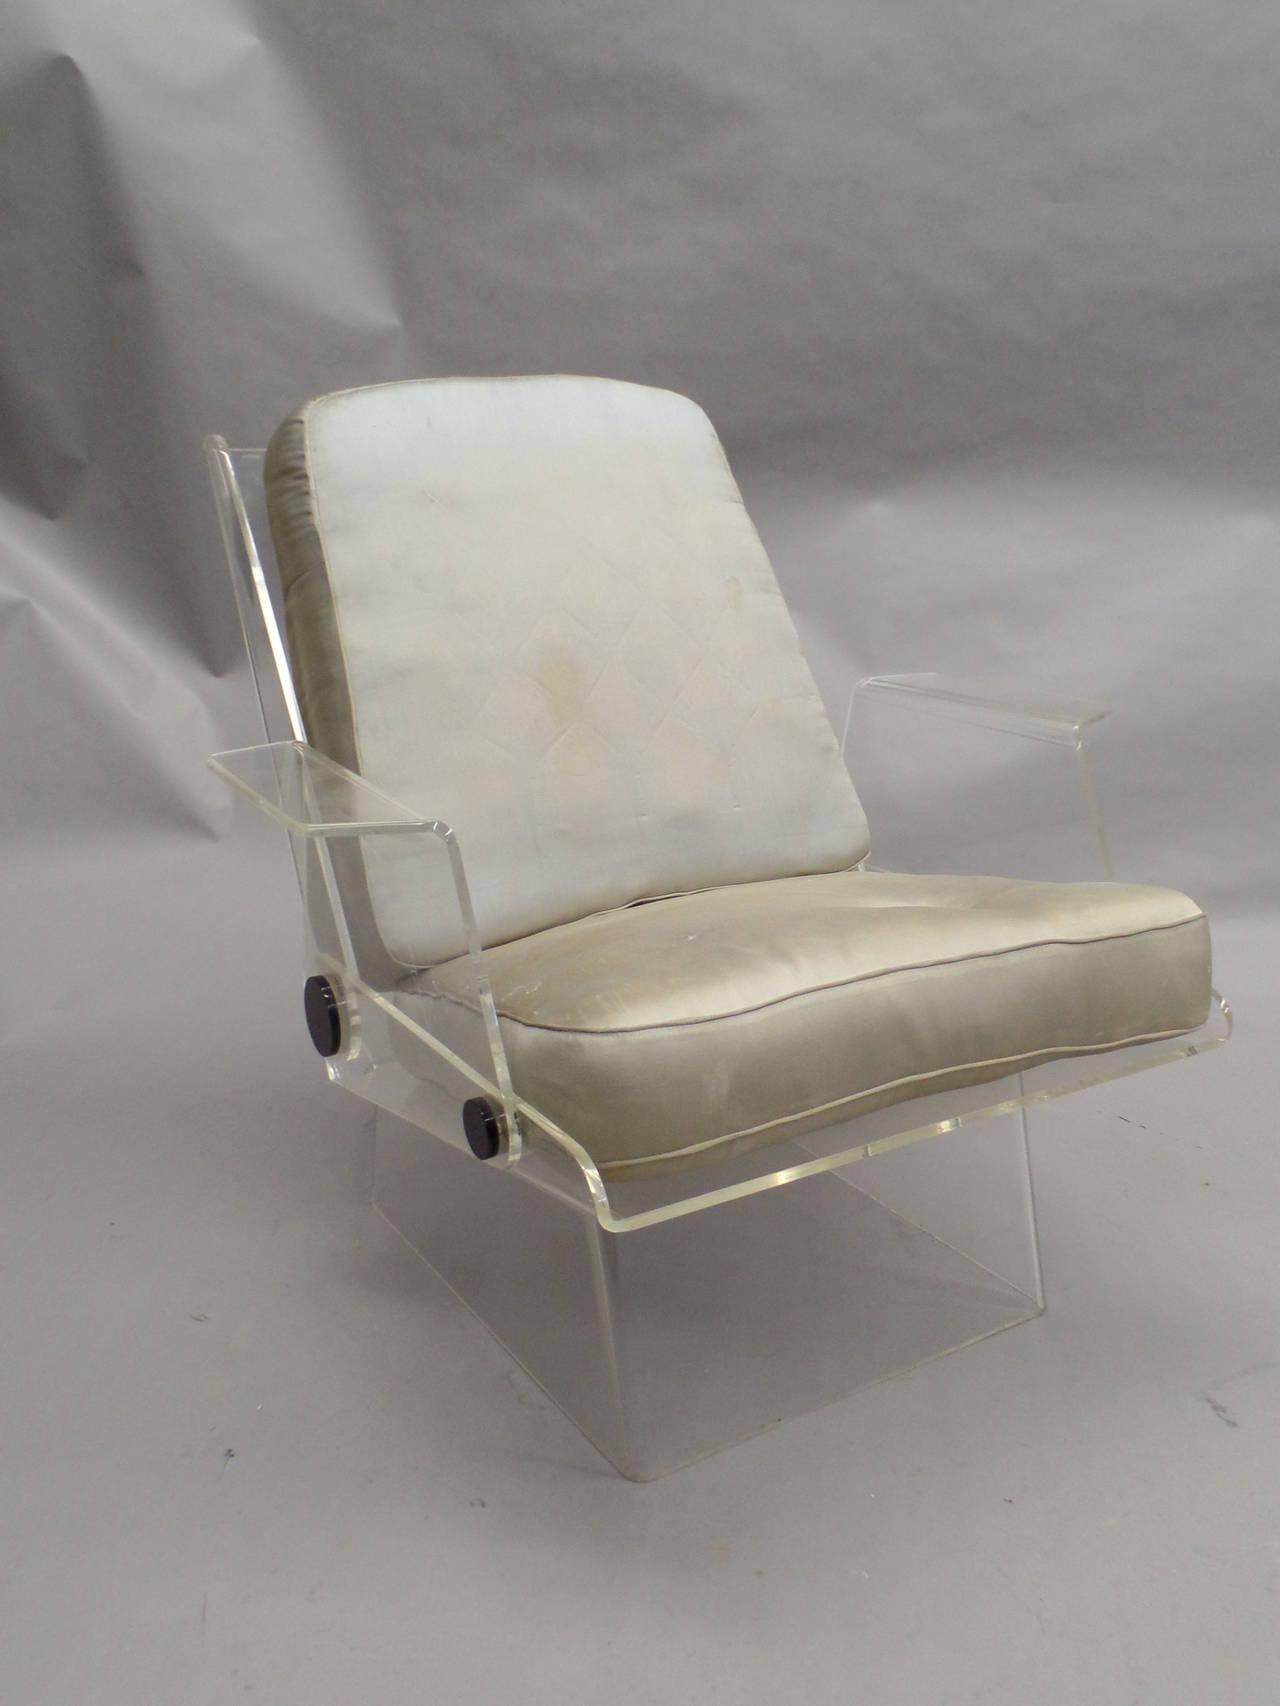 Chaise plexiglass but interesting handmade french flags for Chaise plexiglass fly